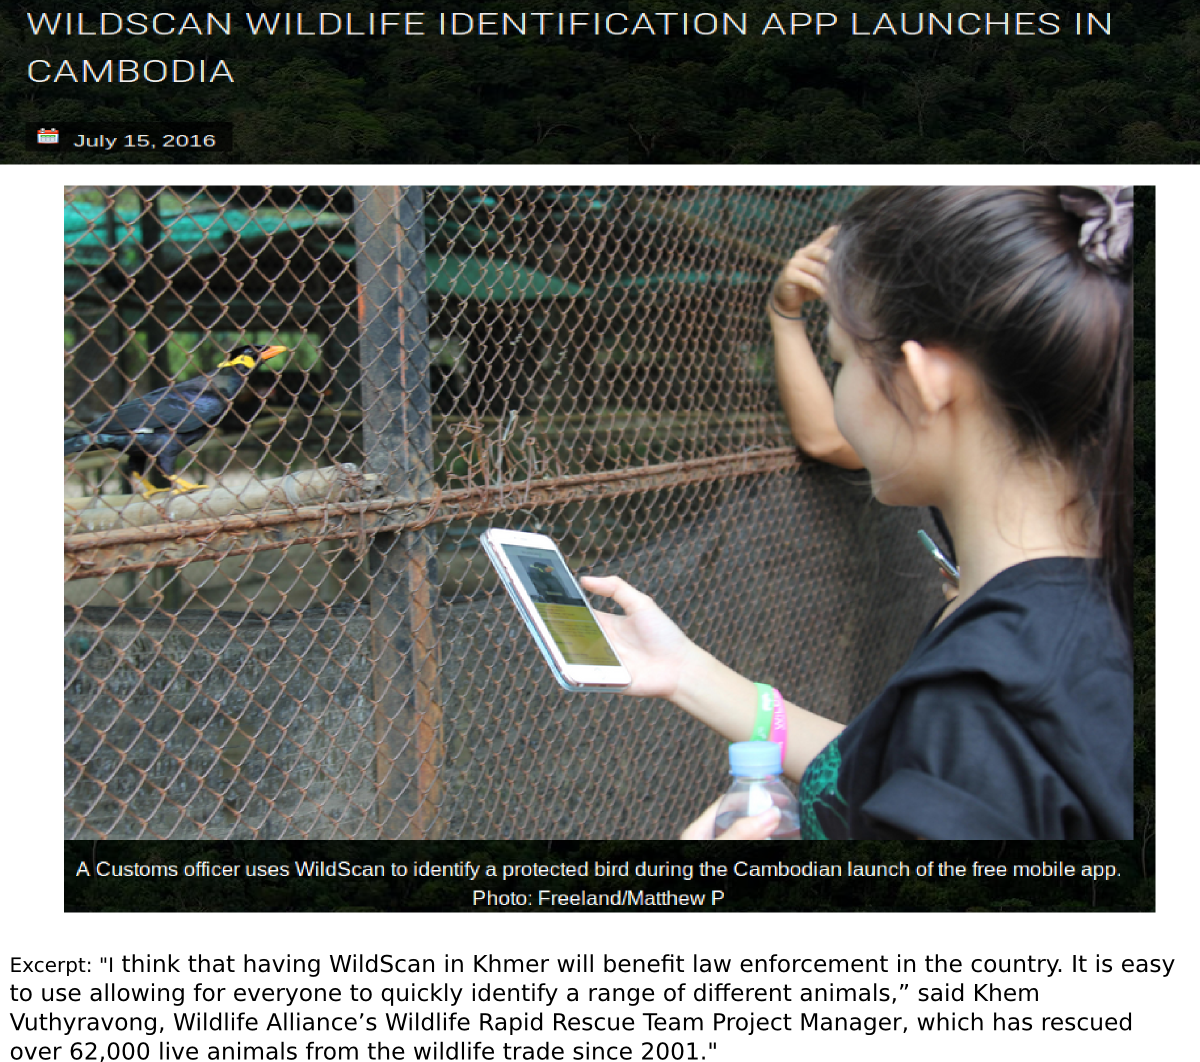 Wildscan Wildlife ID app launches in Cambodia